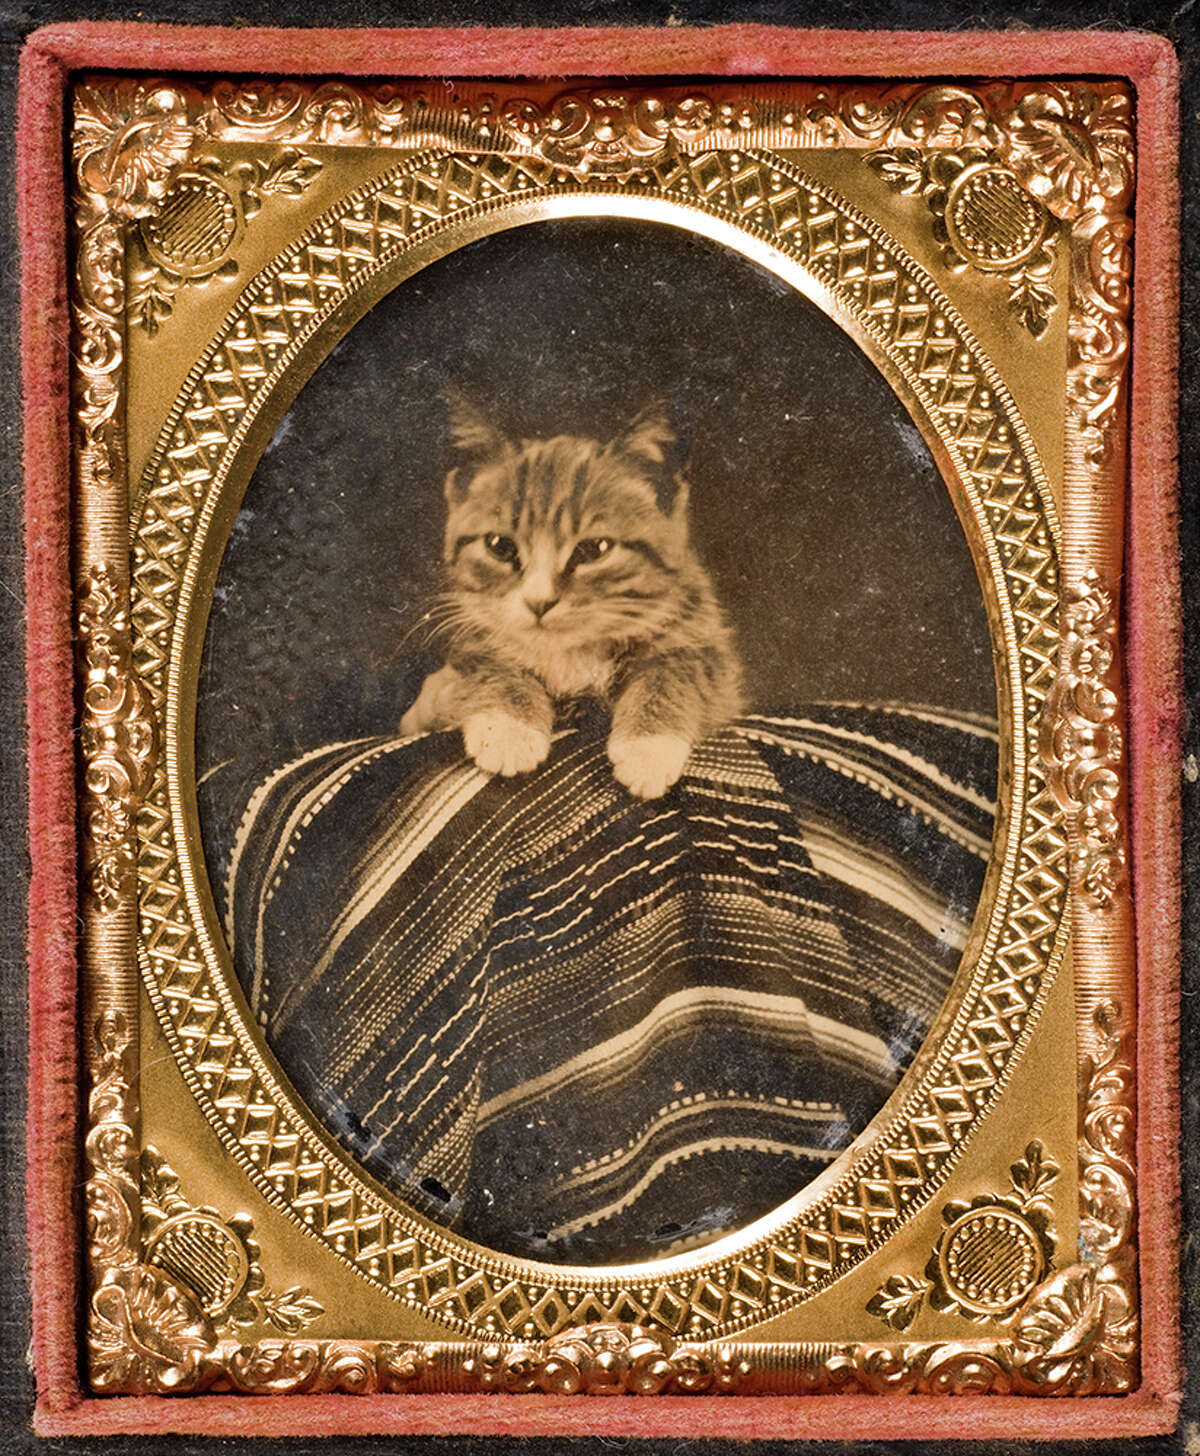 Cat posed with Mexican serape, circa 1866